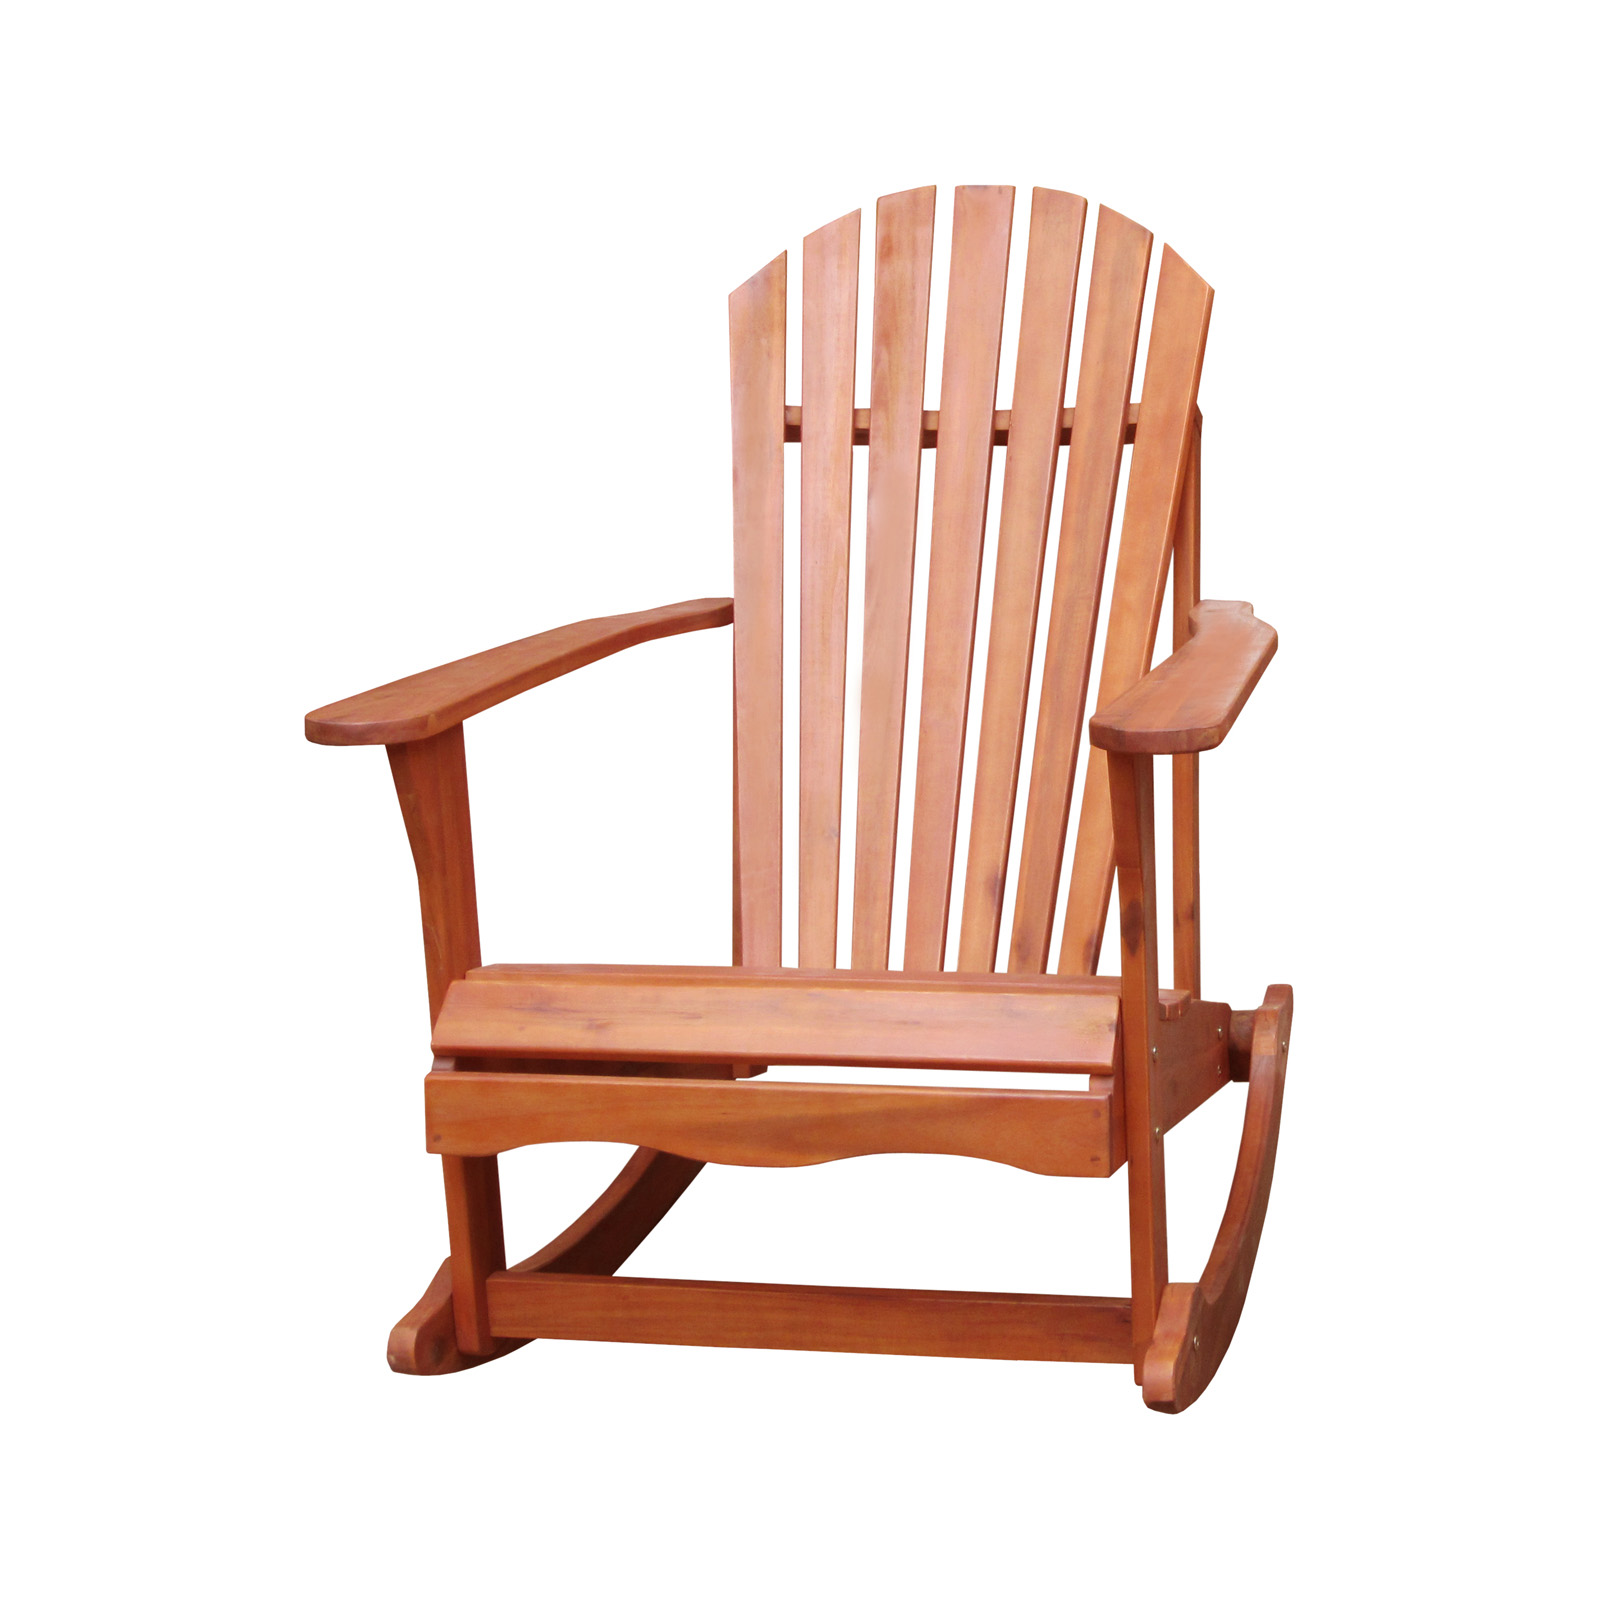 rocking hills chair springview resin adirondack mainstays itm